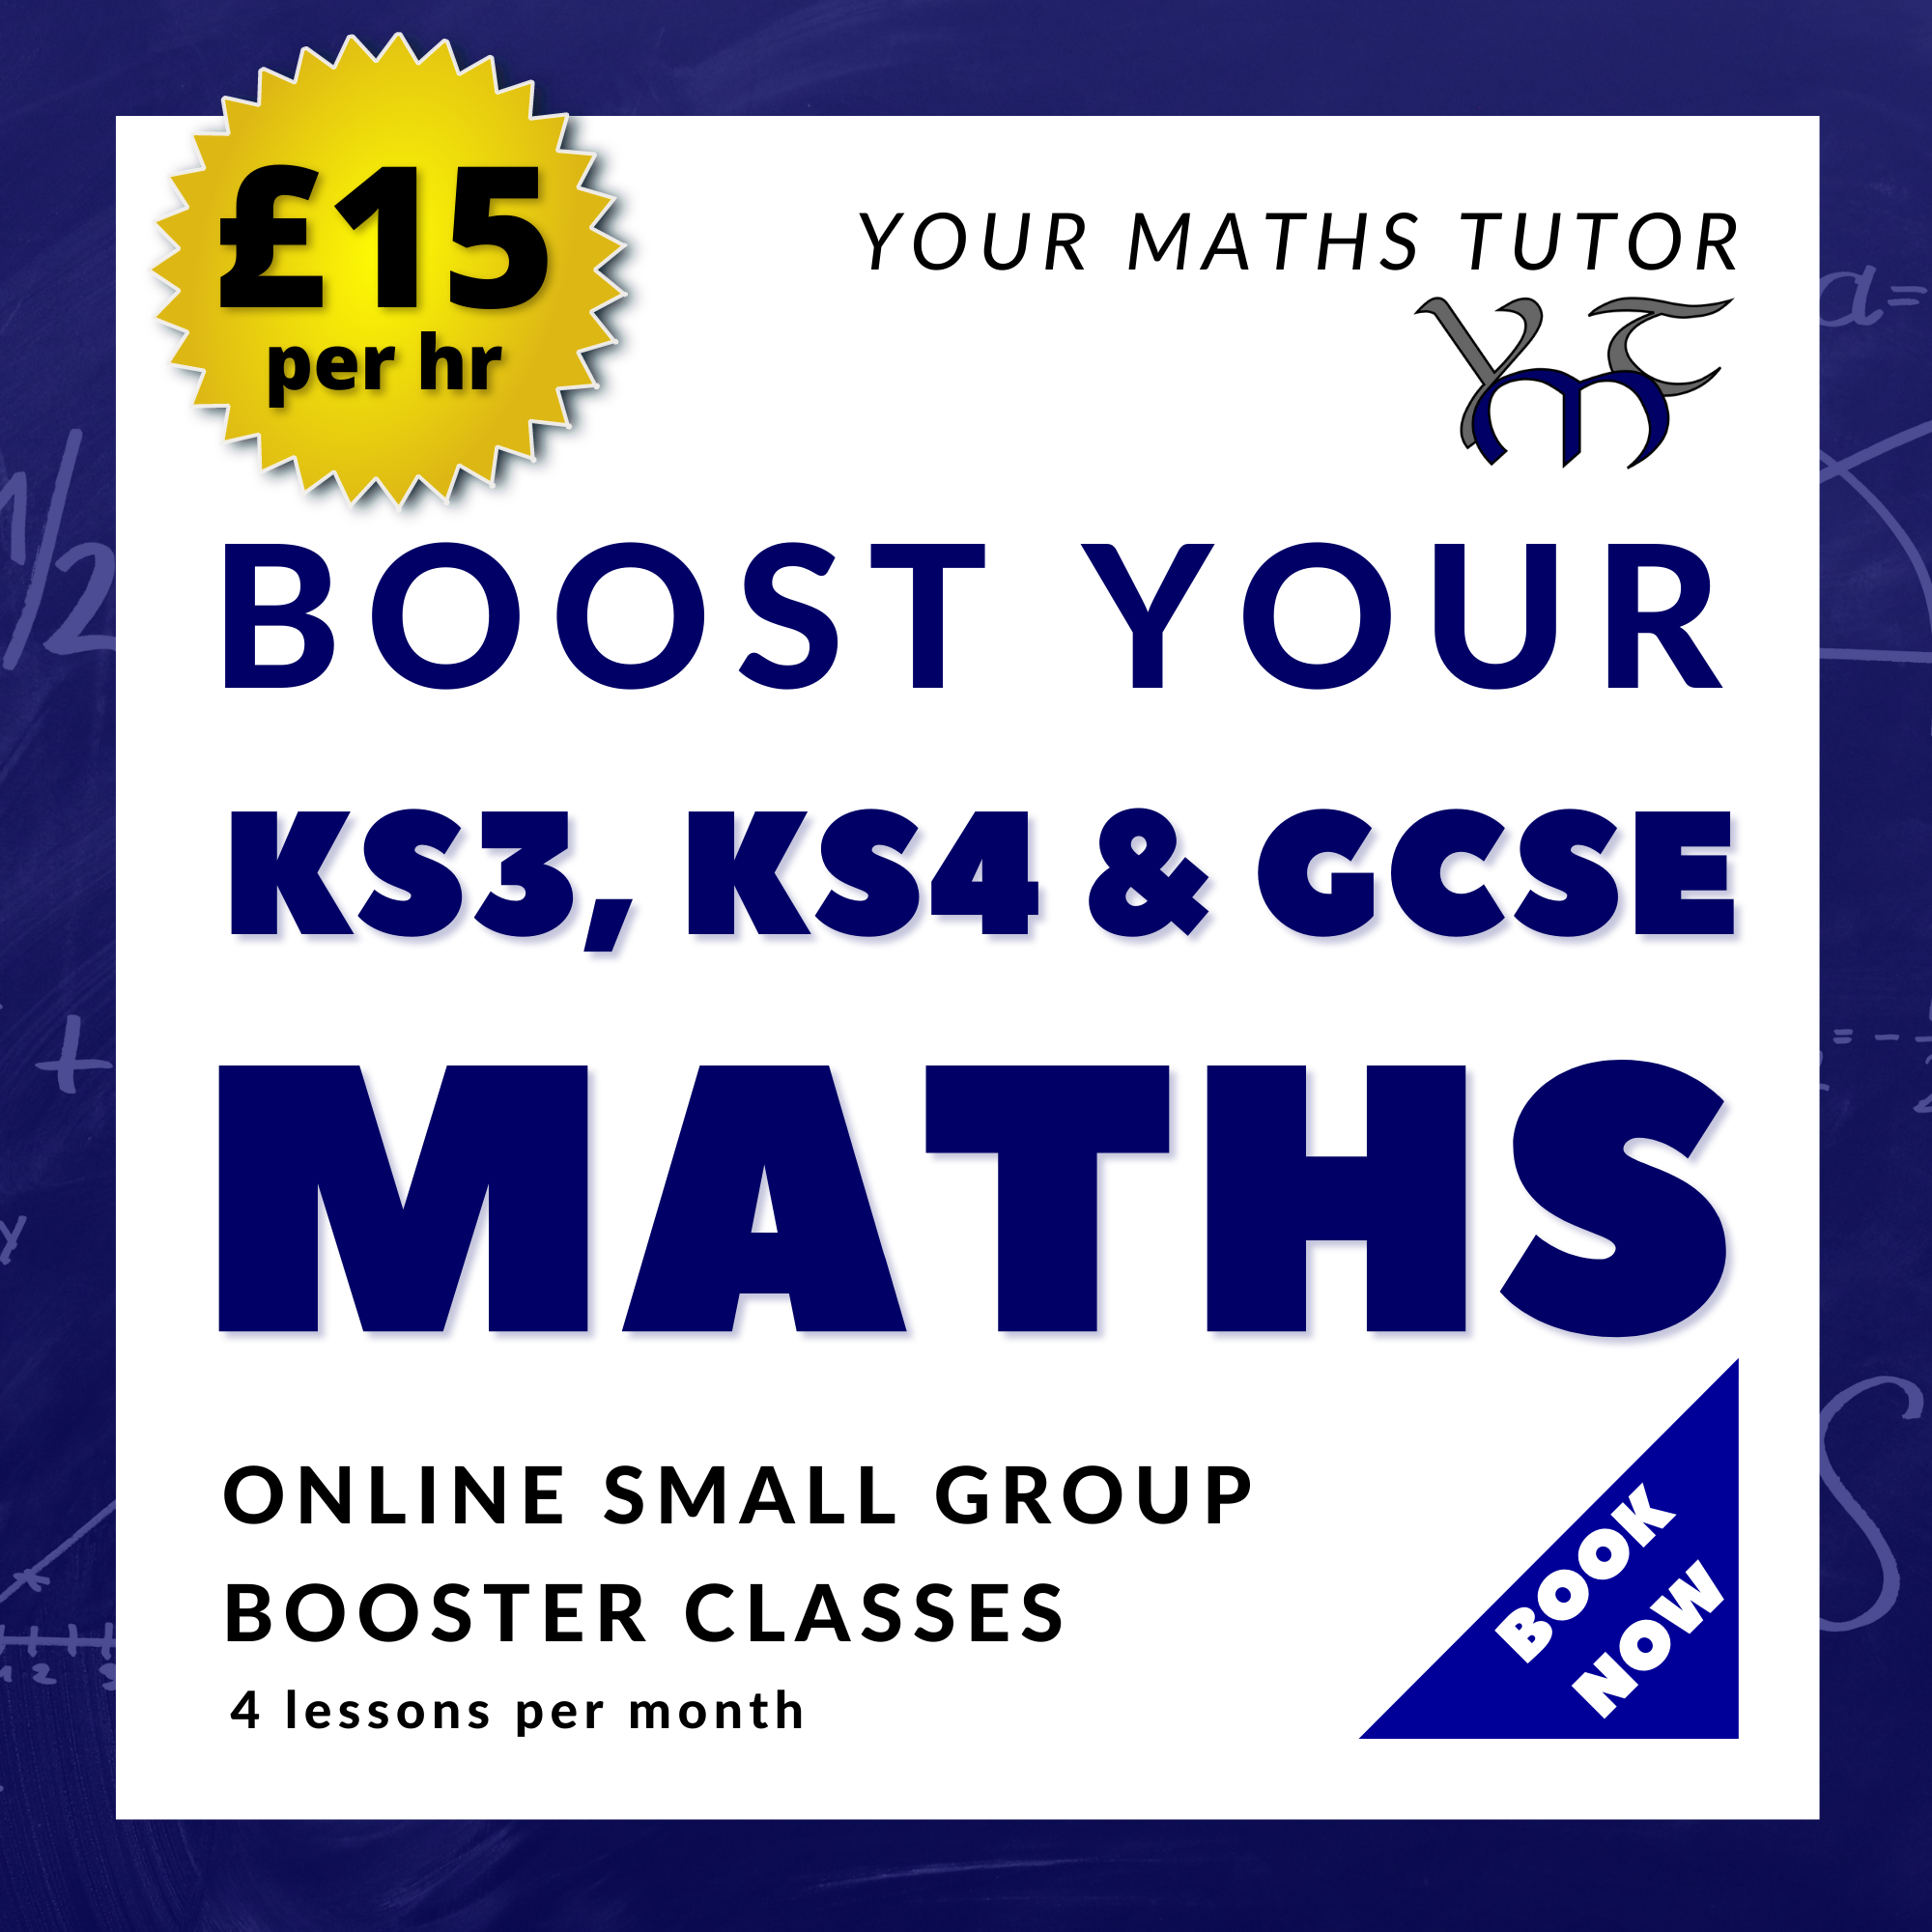 Online Group Booster Classes For Secondary & GCSE Maths